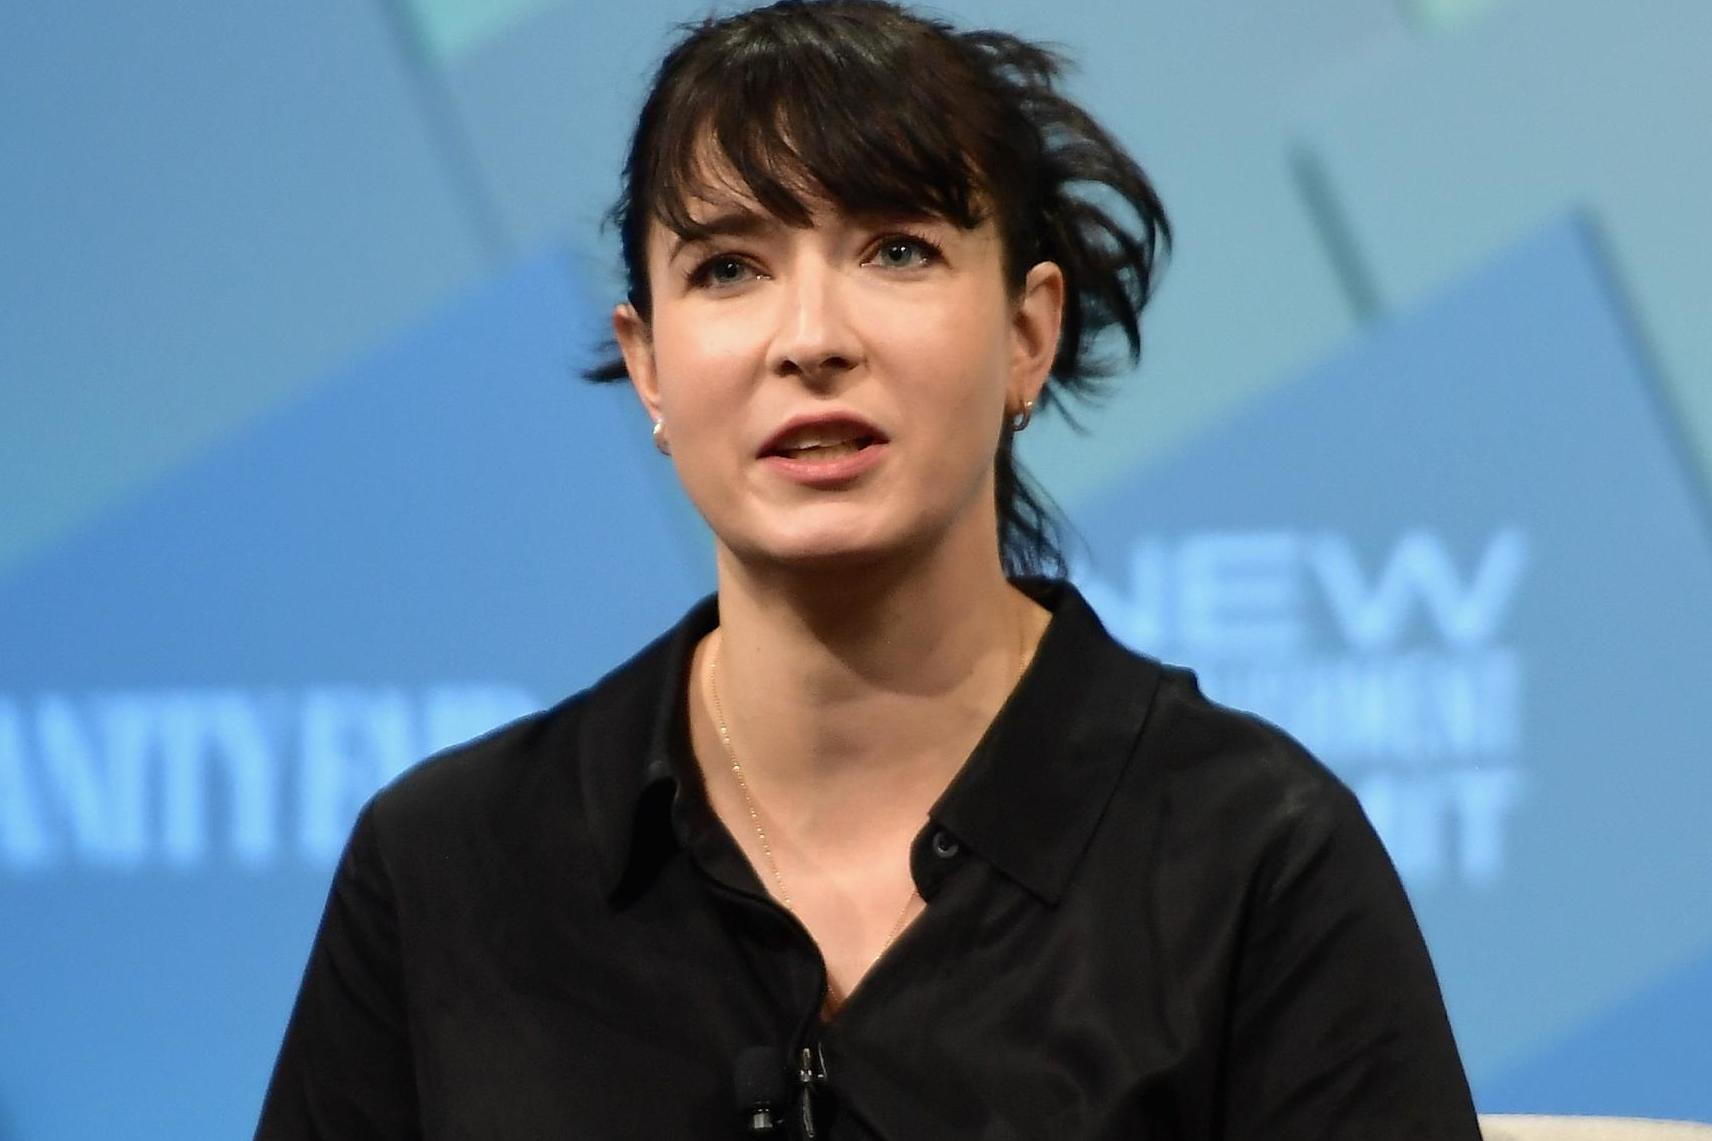 Juno writer Diablo Cody calls abortion bans a 'hellish alternate reality' and wouldn't write the movie today